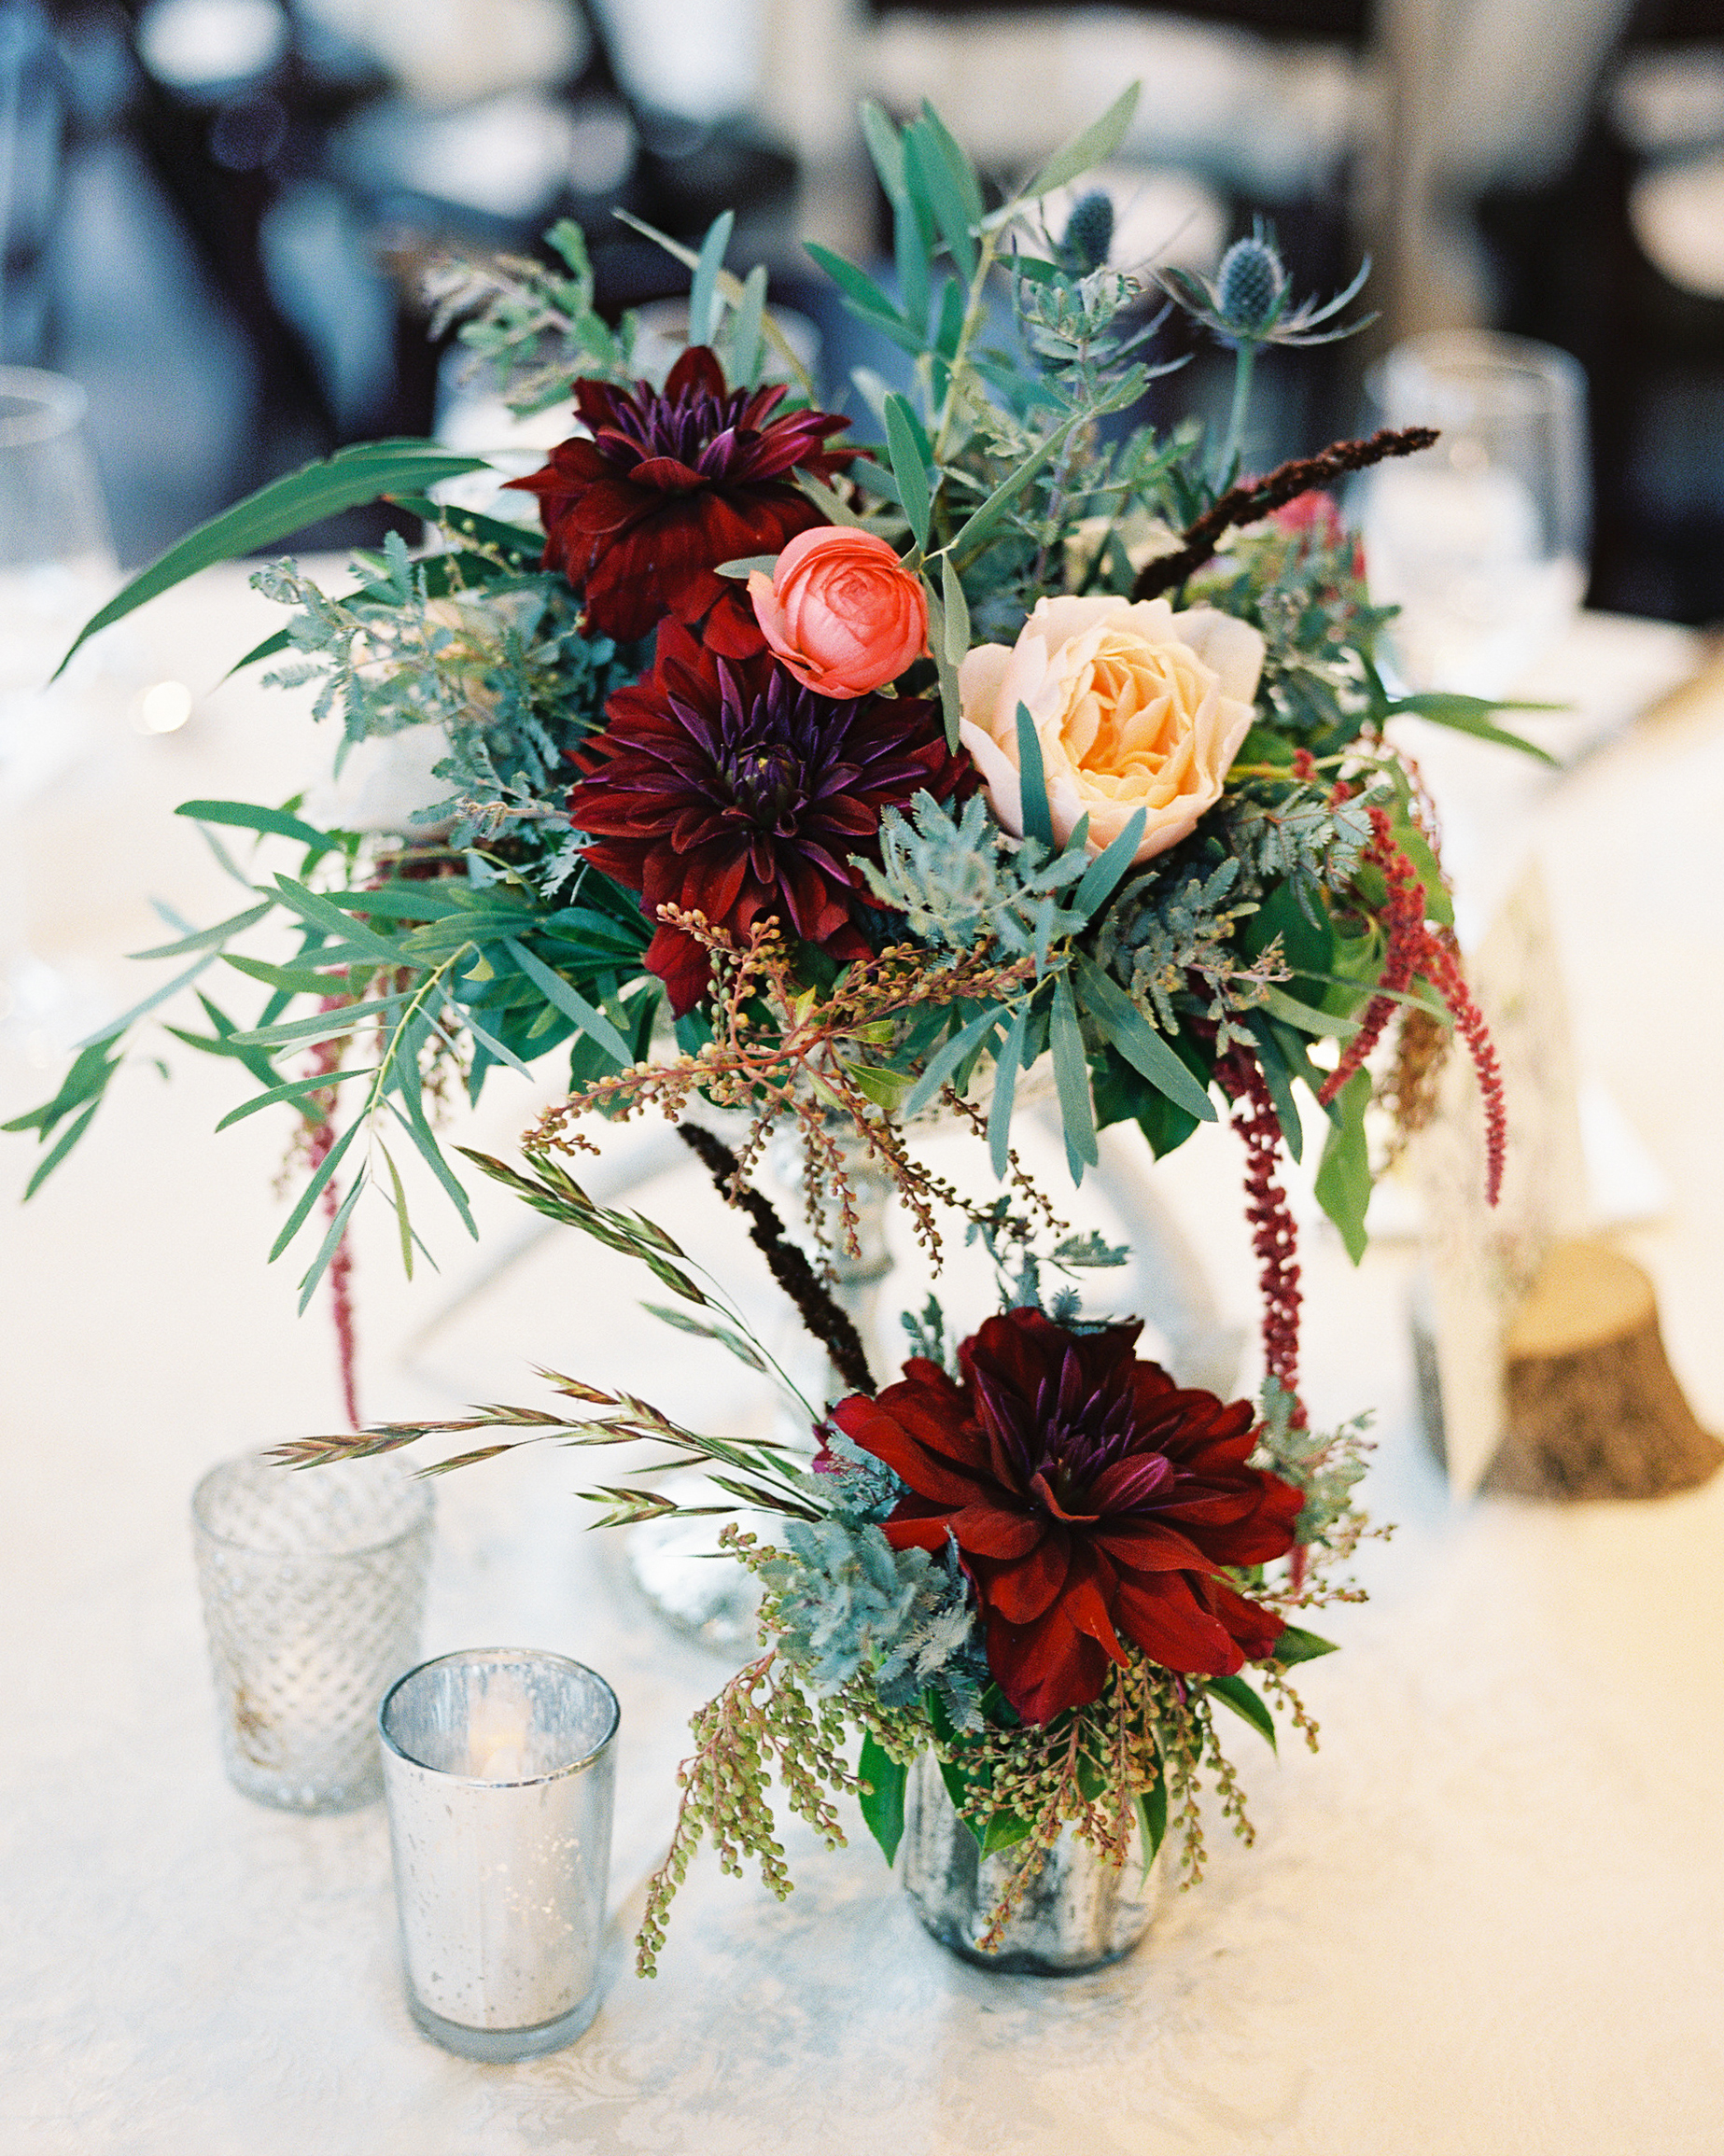 tiffany-nicholas-wedding-centerpieces-134-s111339-0714.jpg